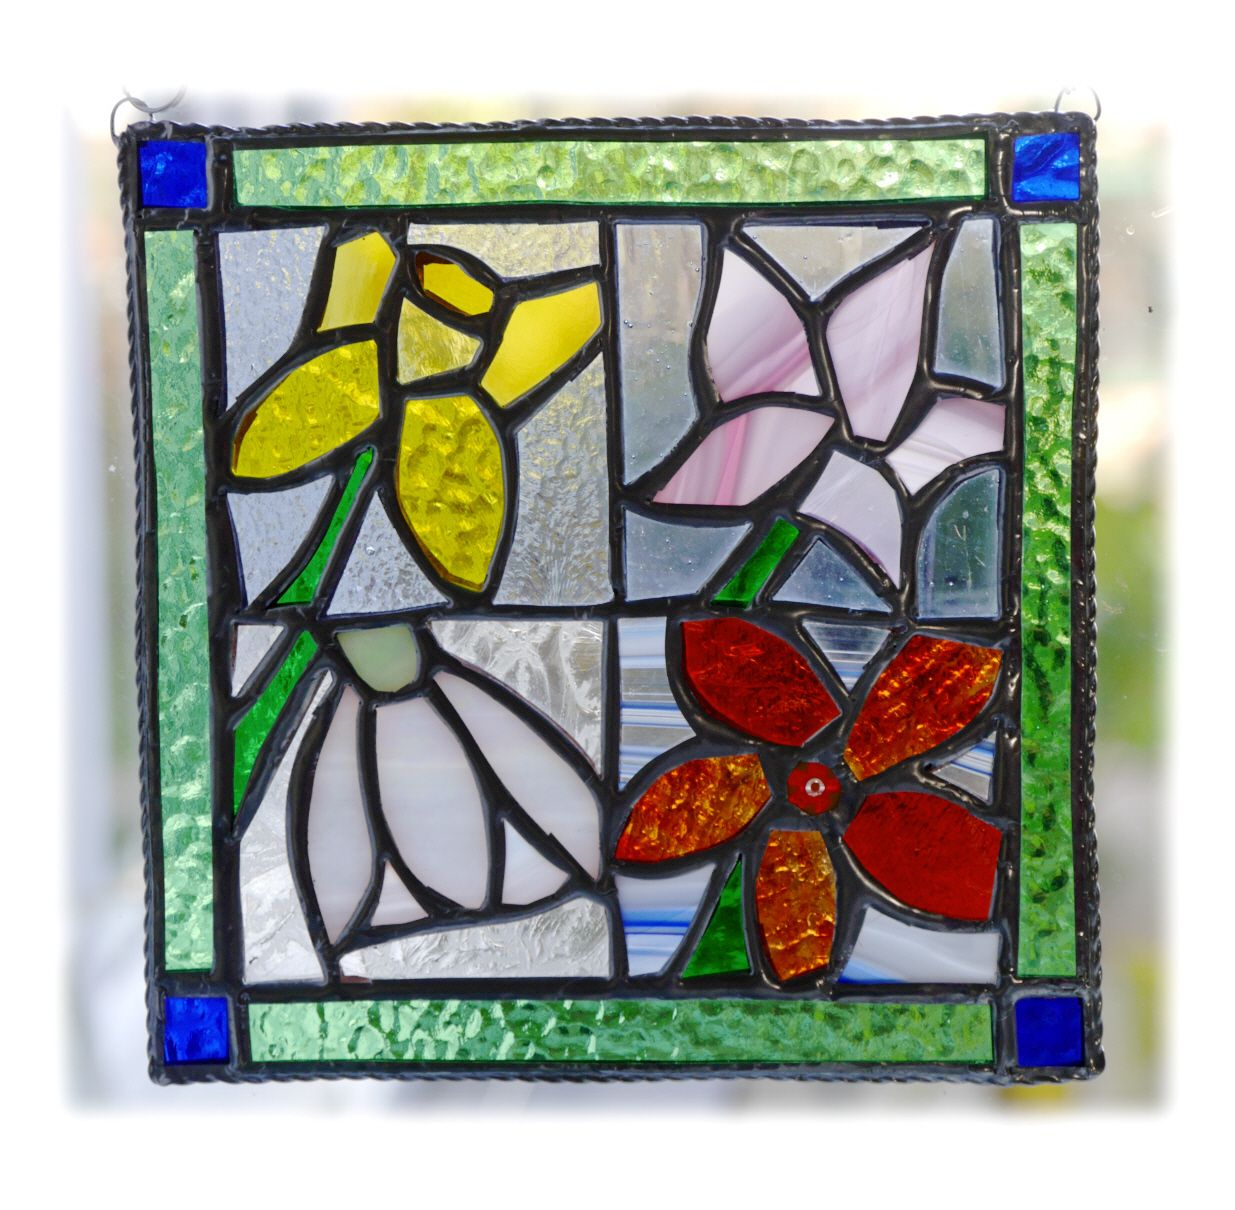 Flower Tile 001 Four Seasons #1810 FREE 30.00